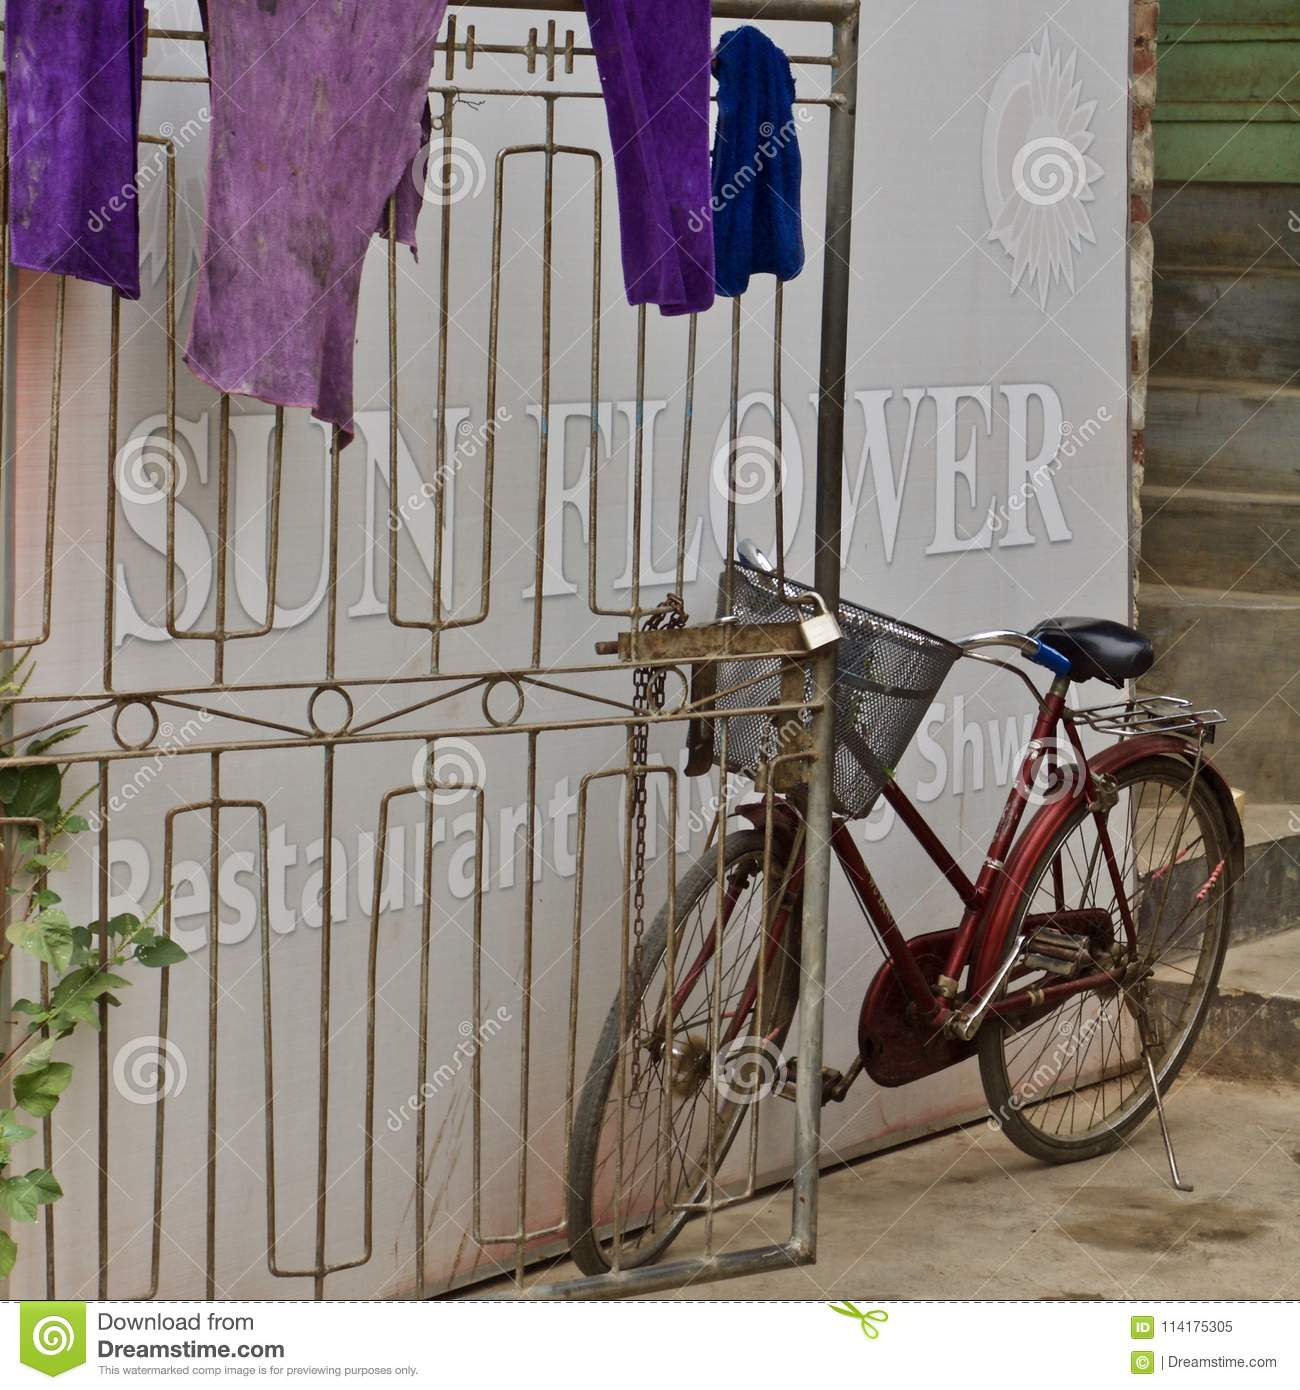 A bicycle in Myanmar